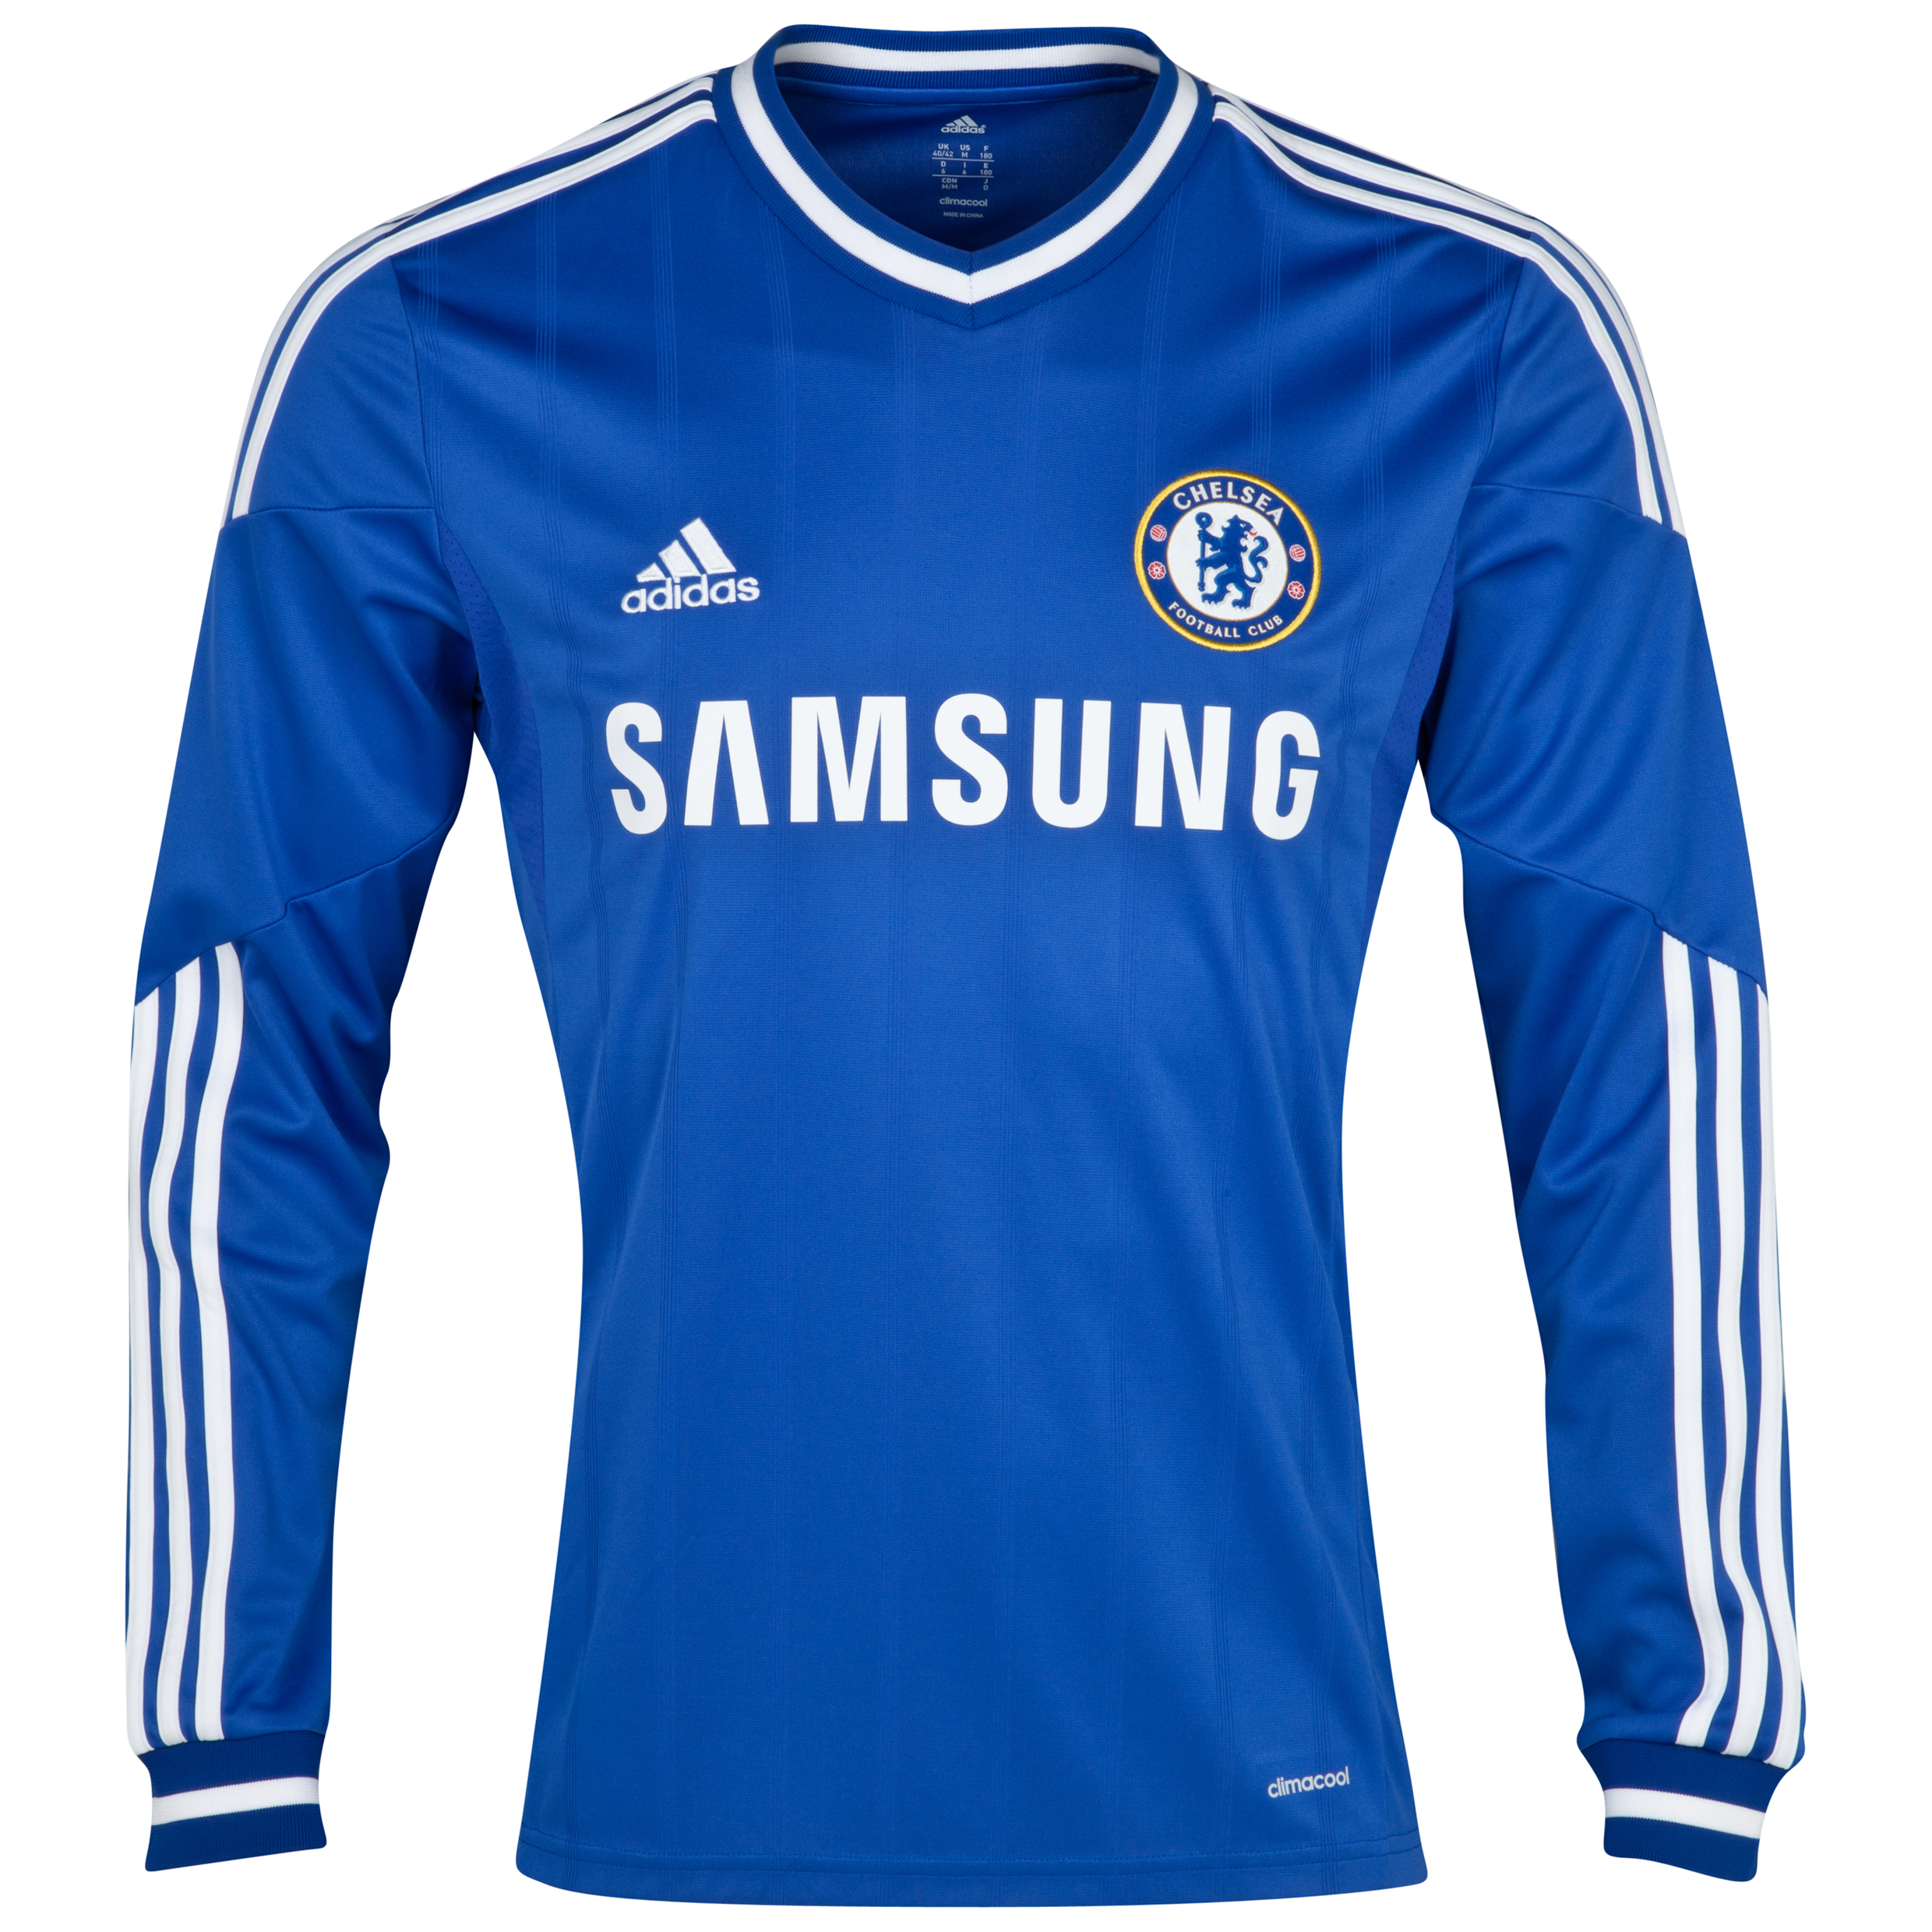 Chelsea Home Shirt 2013/14 Long Sleeve